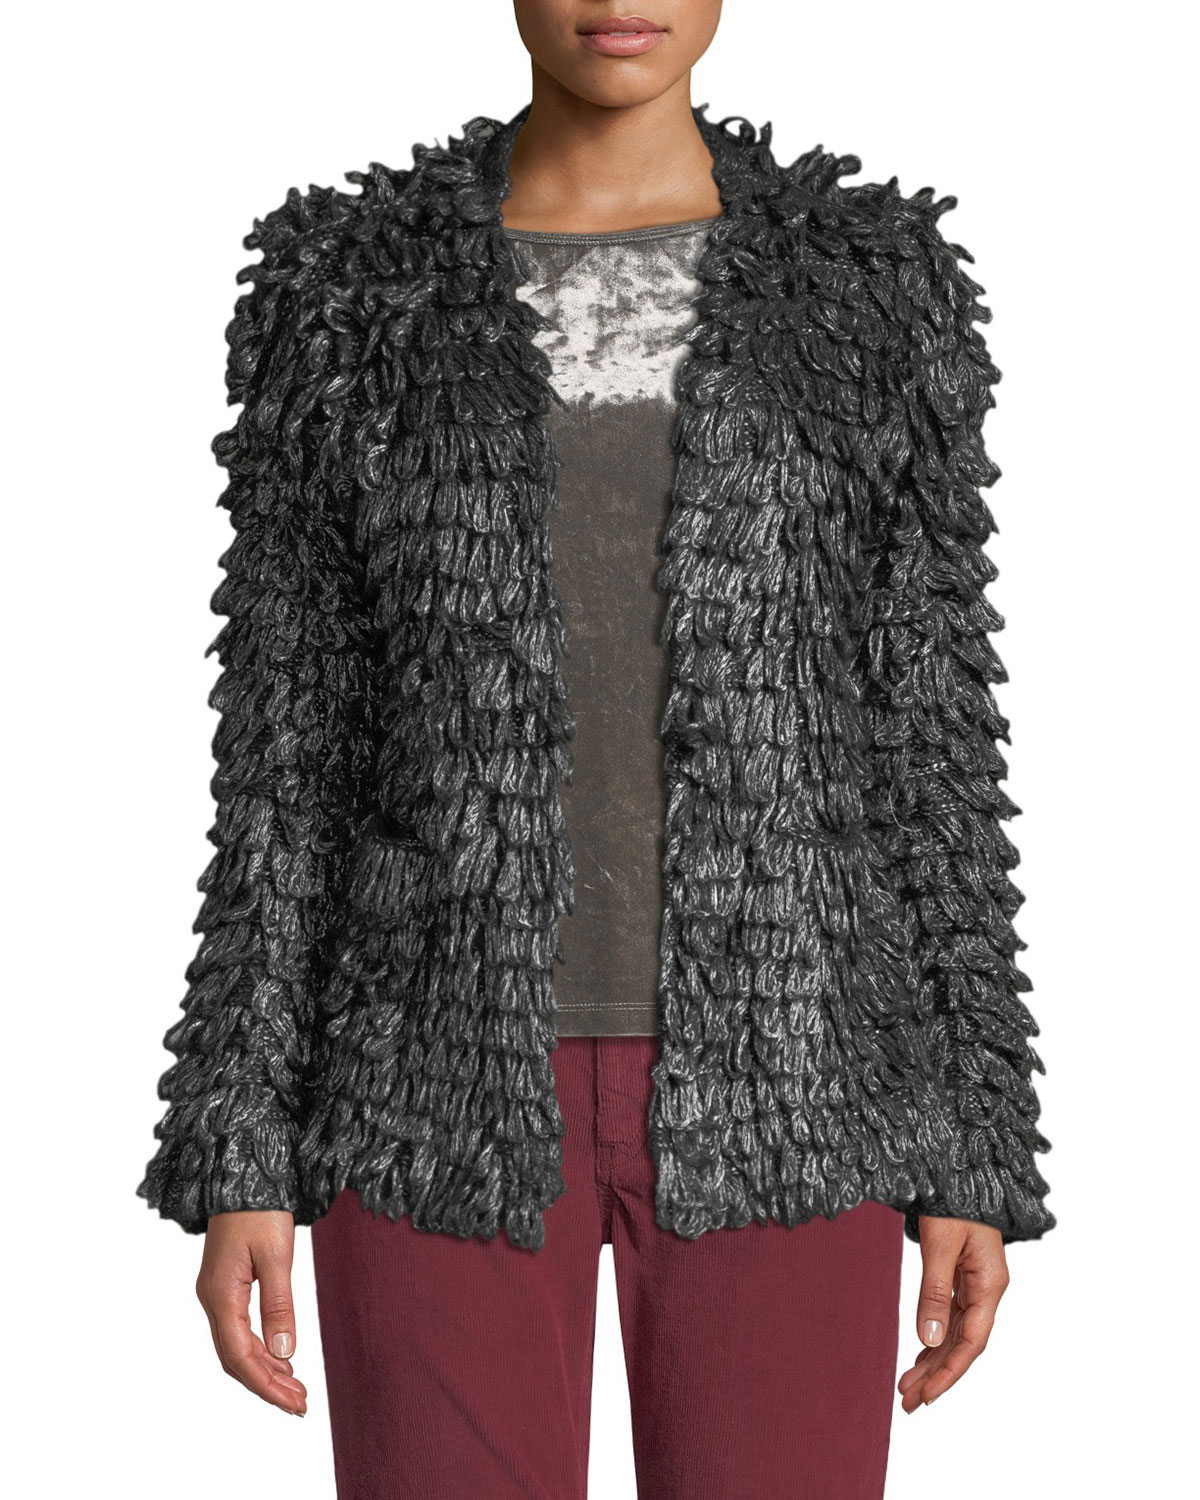 The Short Monster Loop-Knit Jacket in Metallic Charcoal